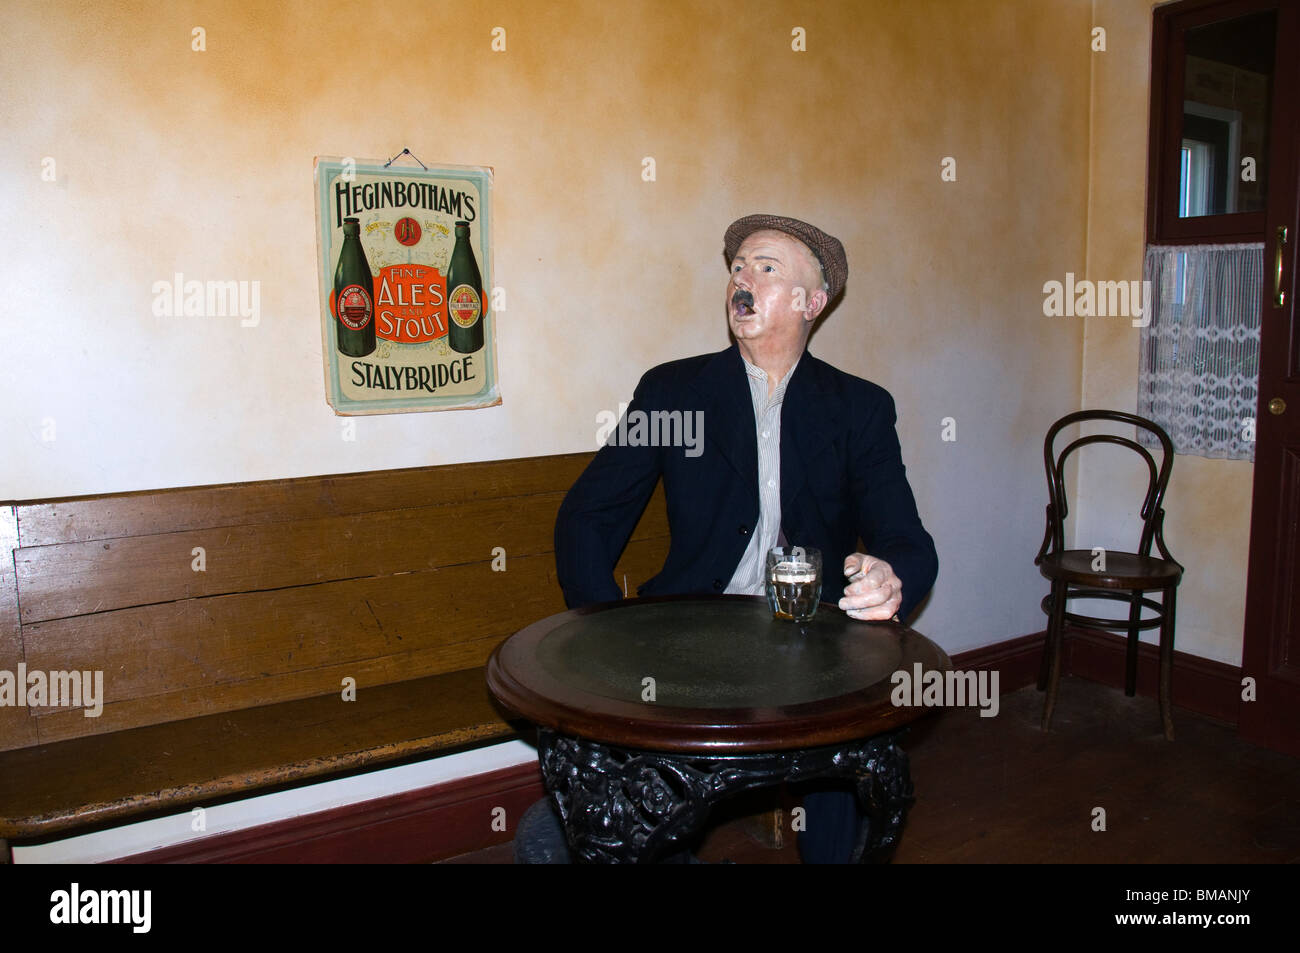 Reproduction of an early 20th century pub interior, Portland Basin Museum, Ashton under Lyne, Tameside, England, - Stock Image